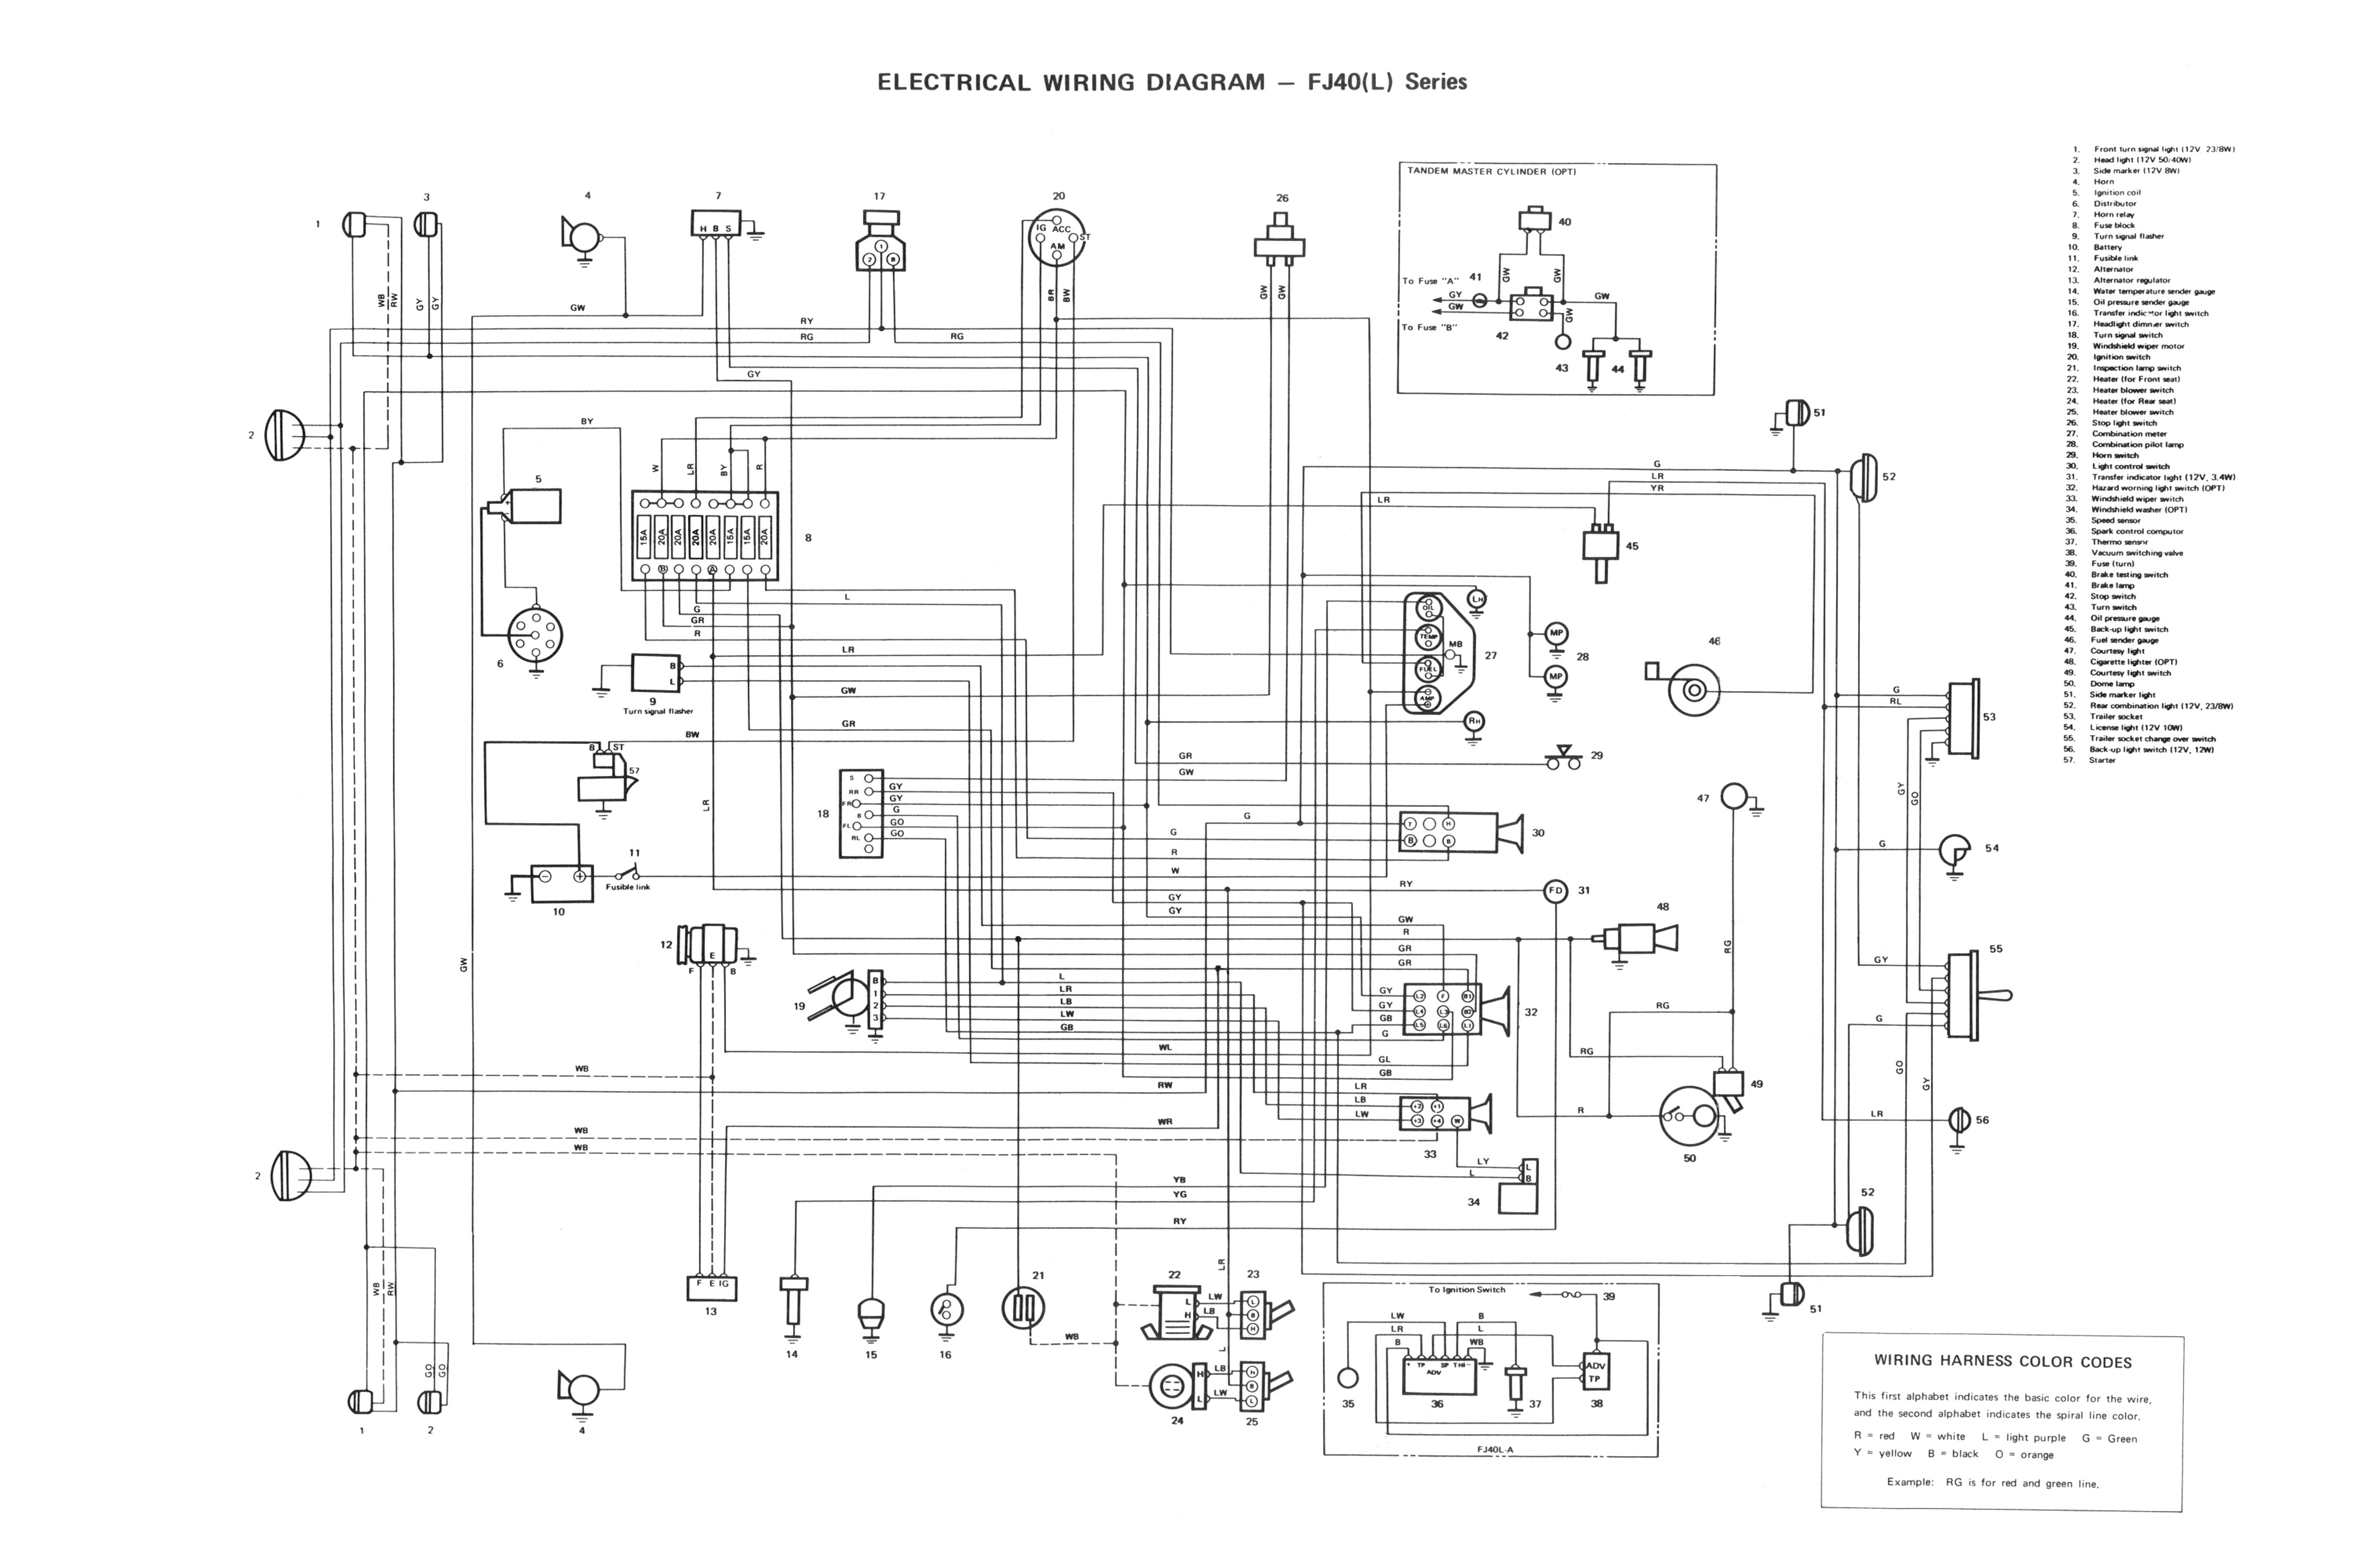 Fj60 Manual Auto Electrical Wiring Diagram Toyota Bj42 Related With